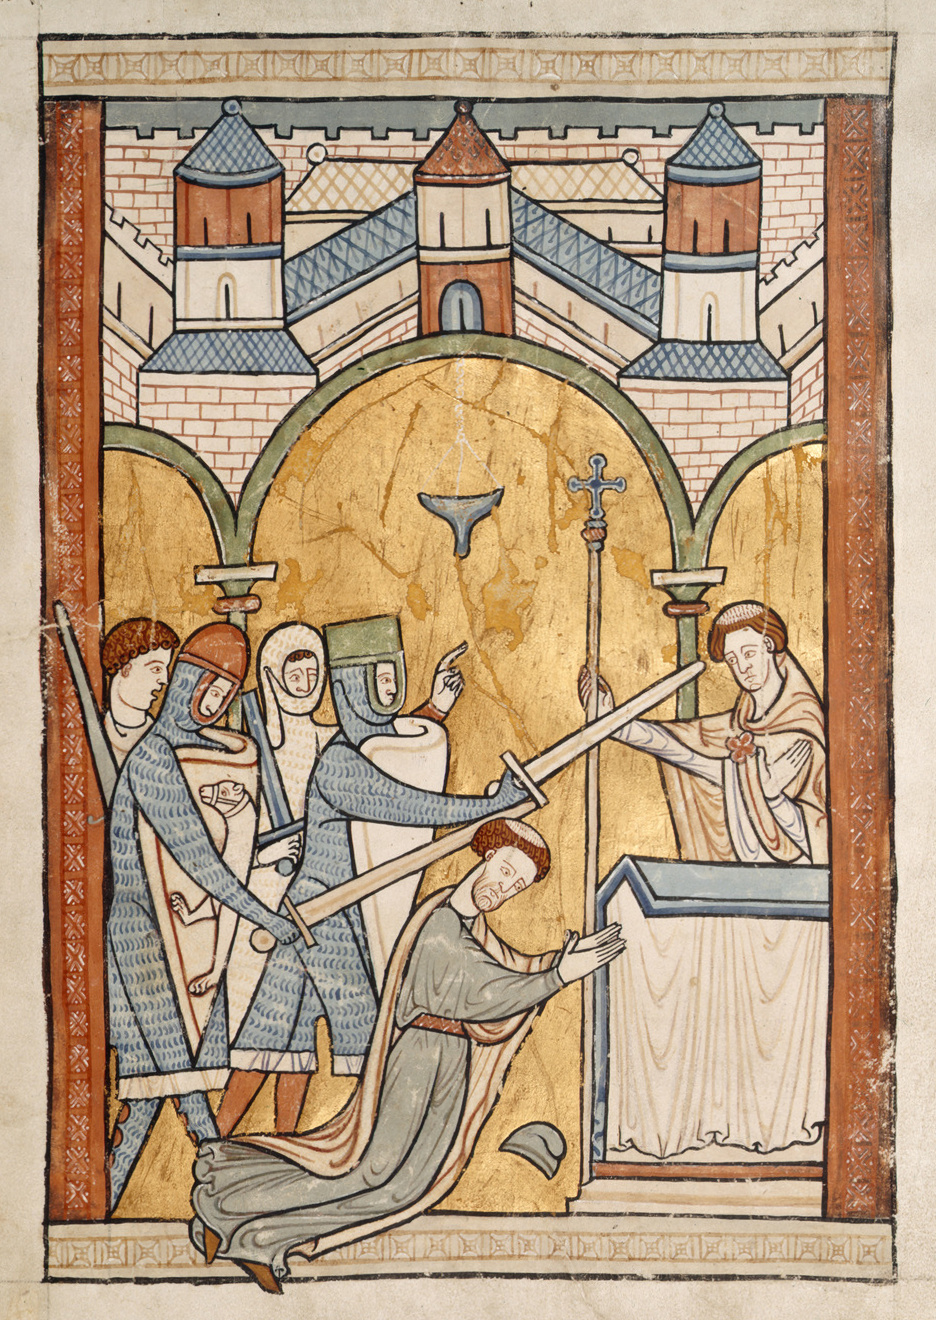 An image from a 13th century manuscript showing Thomas Becket's assassination in Canterbury Cathedral.